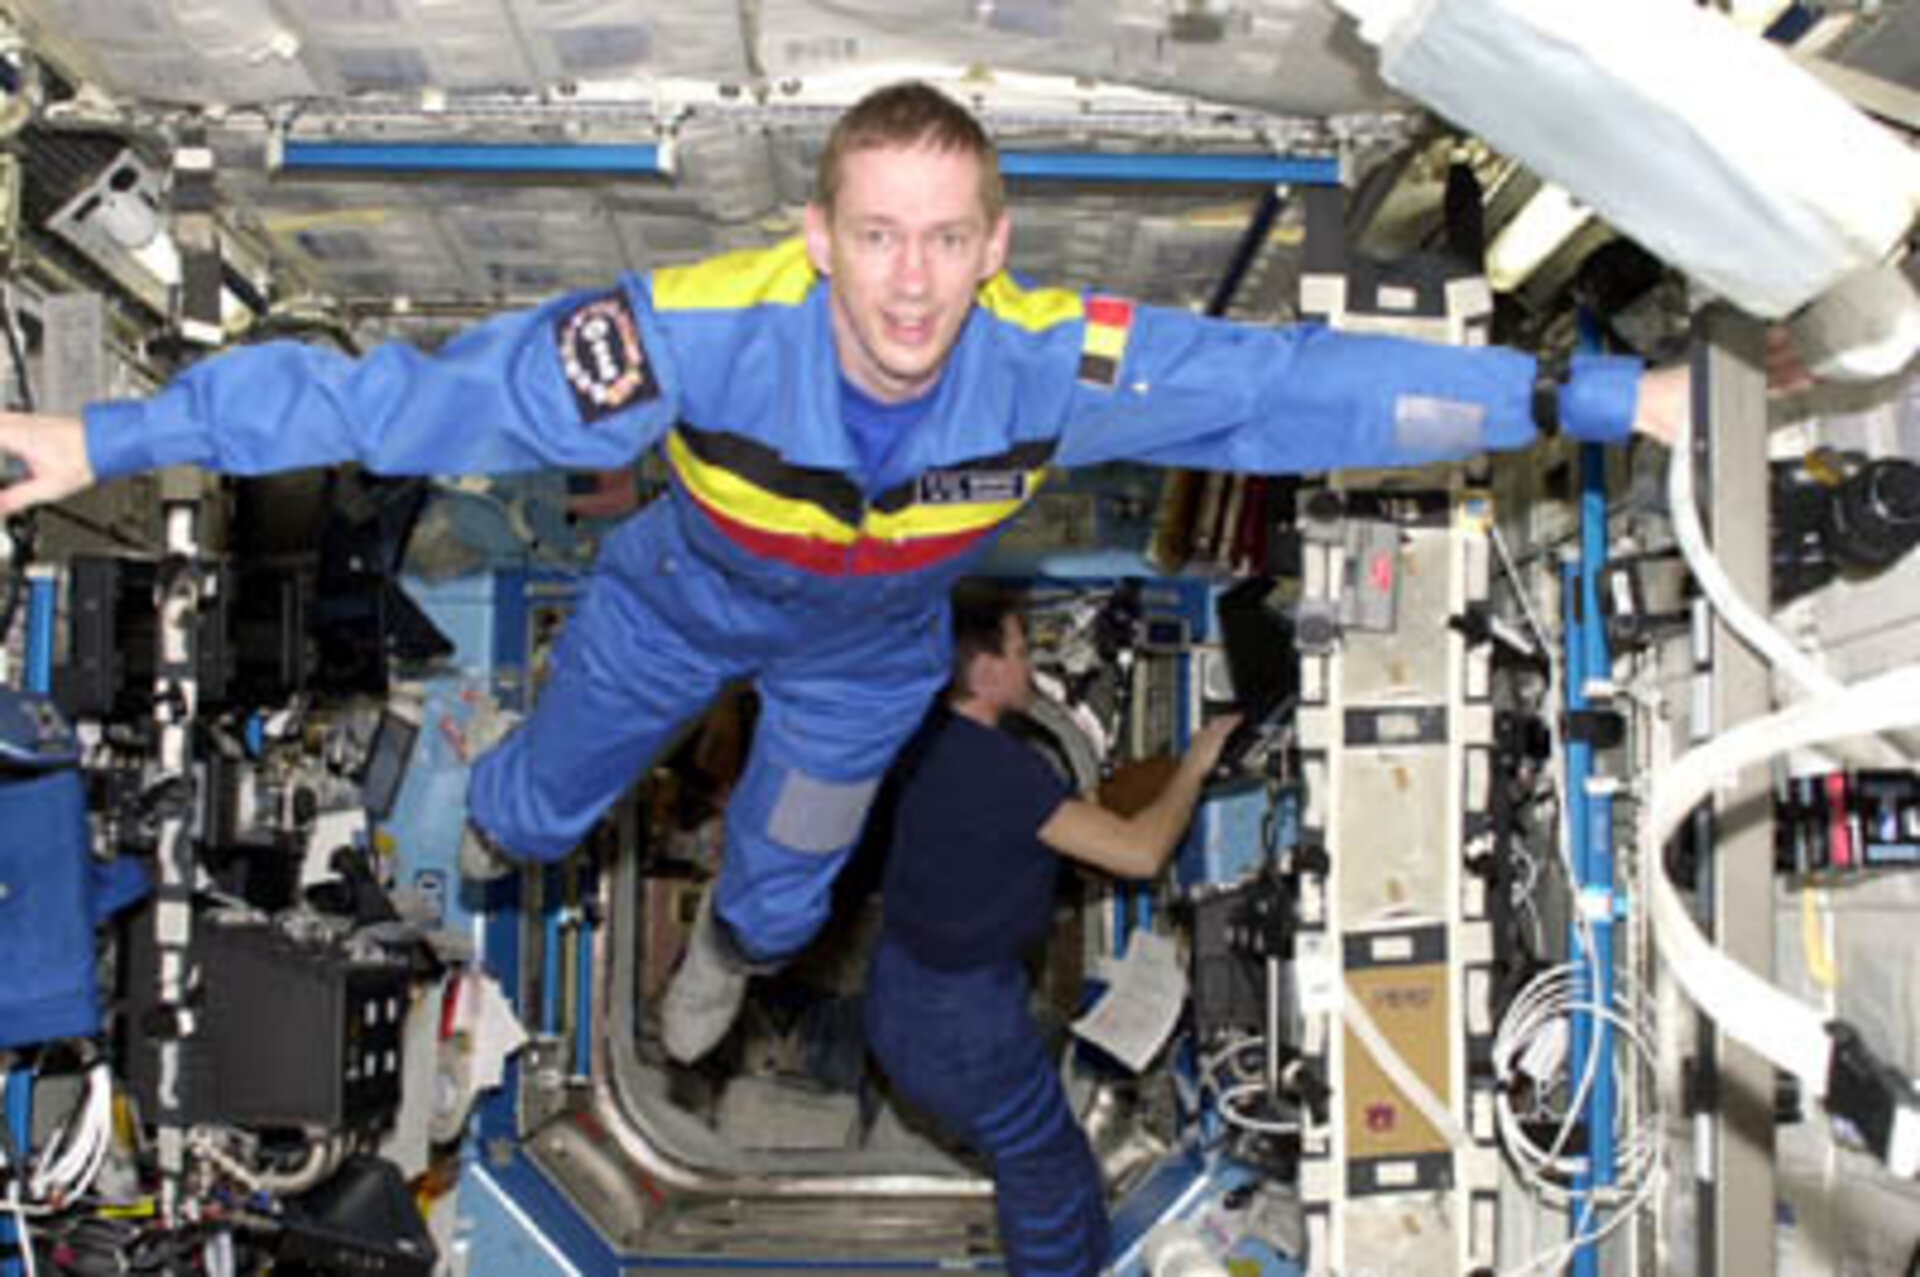 A competition to find a European name for De Winne's mission to the ISS